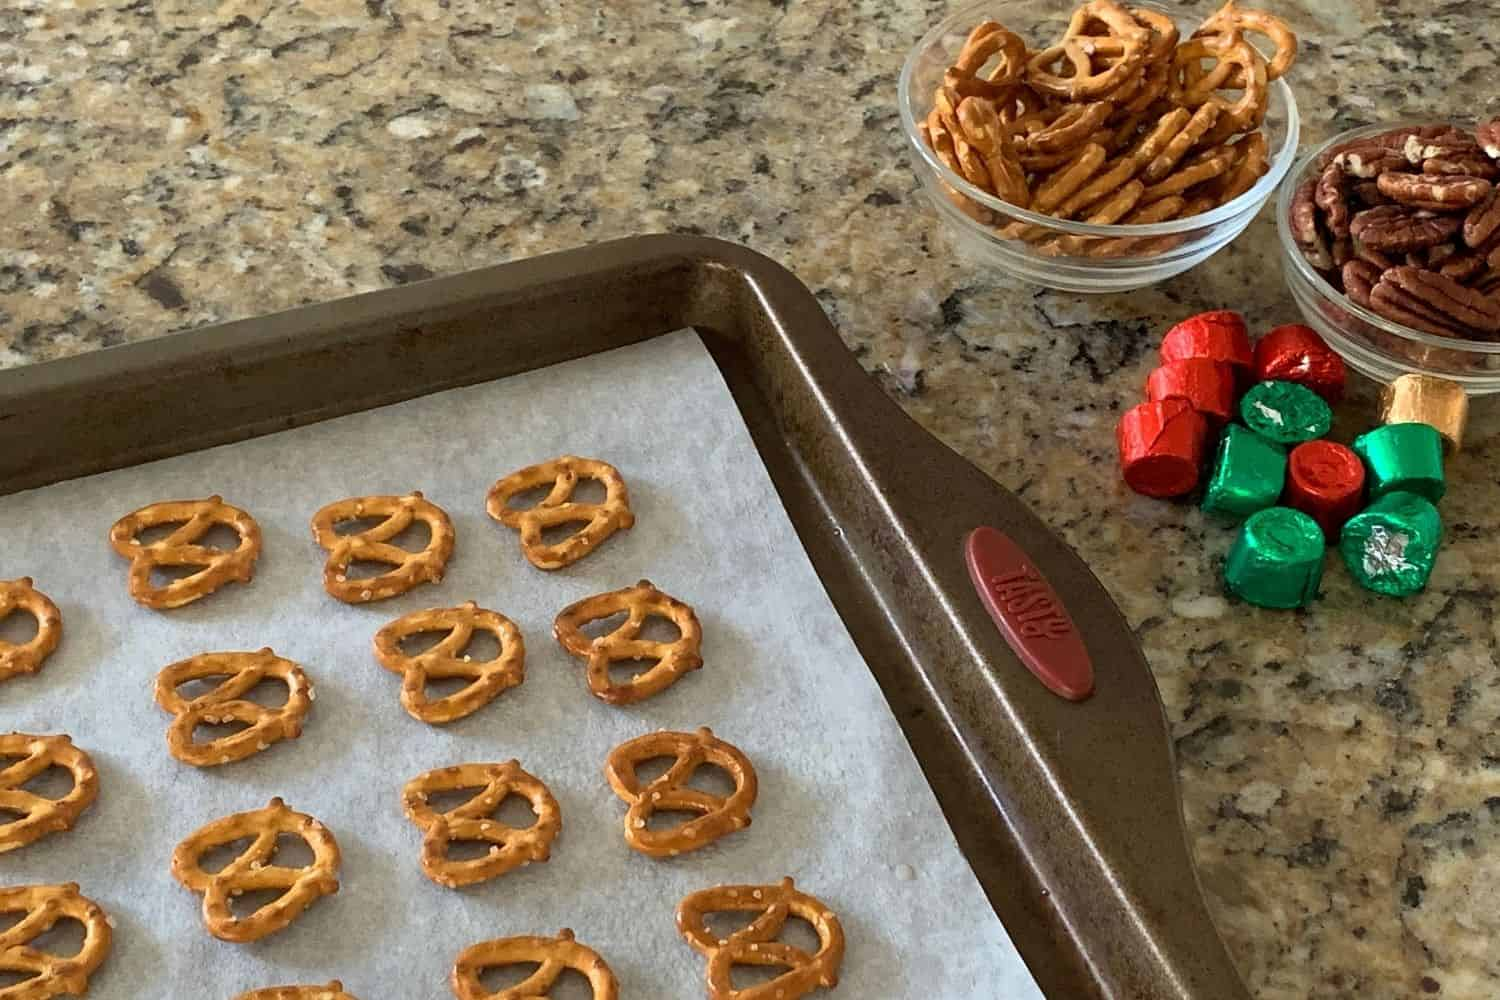 lay out the pretzels on a cookie sheet before baking